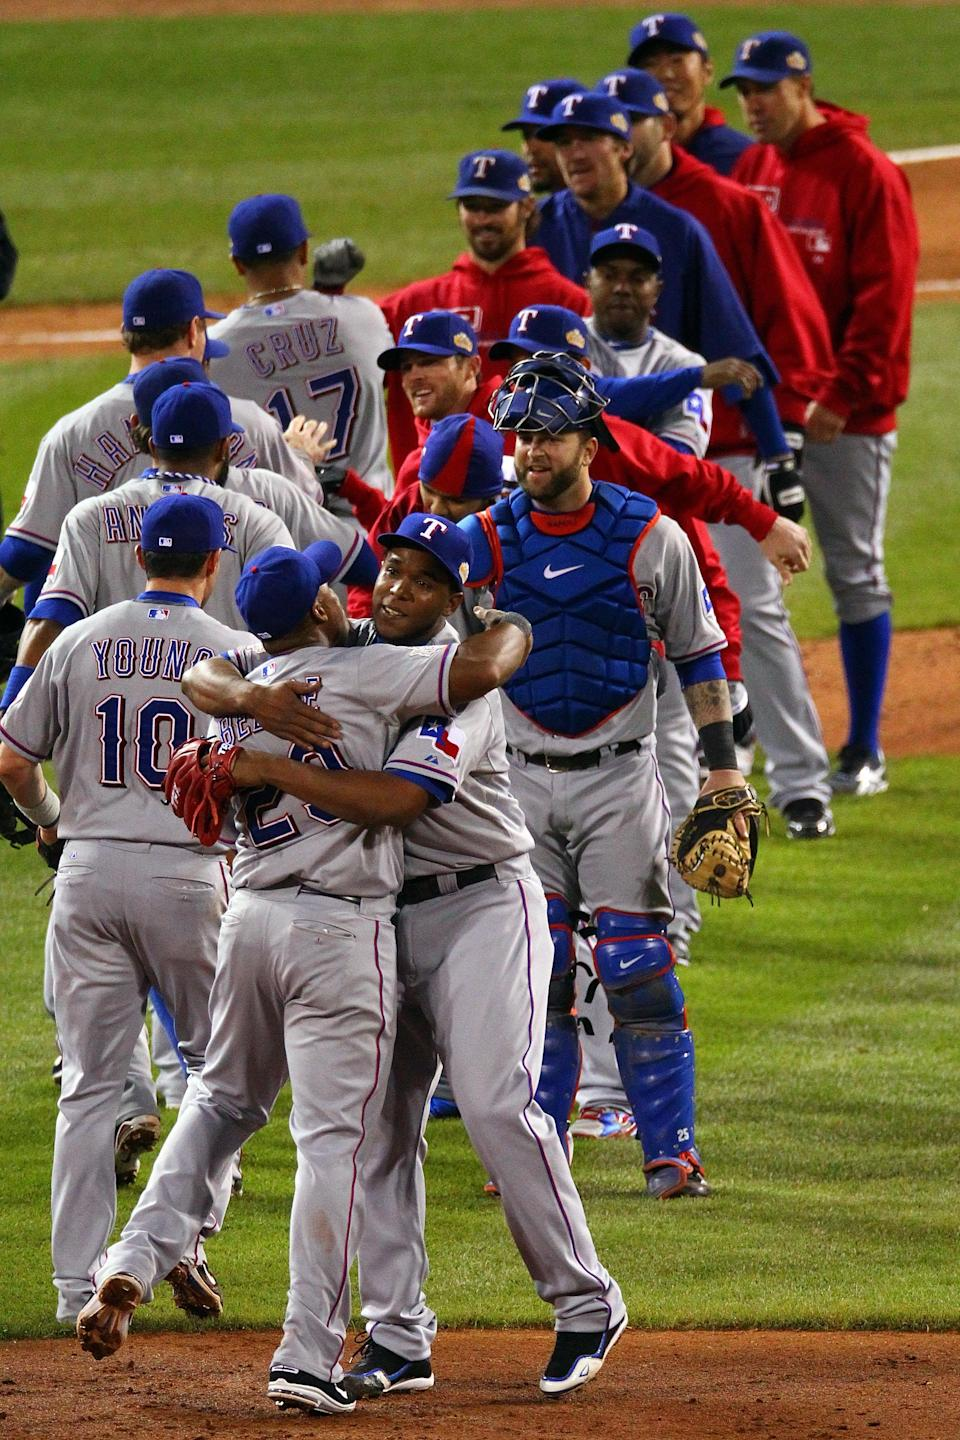 ST LOUIS, MO - OCTOBER 20: Adrian Beltre #29 and Neftali Feliz #30 of the Texas Rangers celebrate after defeating the St. Louis Cardinals 2-1 during Game Two of the MLB World Series at Busch Stadium on October 20, 2011 in St Louis, Missouri. (Photo by Dilip Vishwanat/Getty Images)